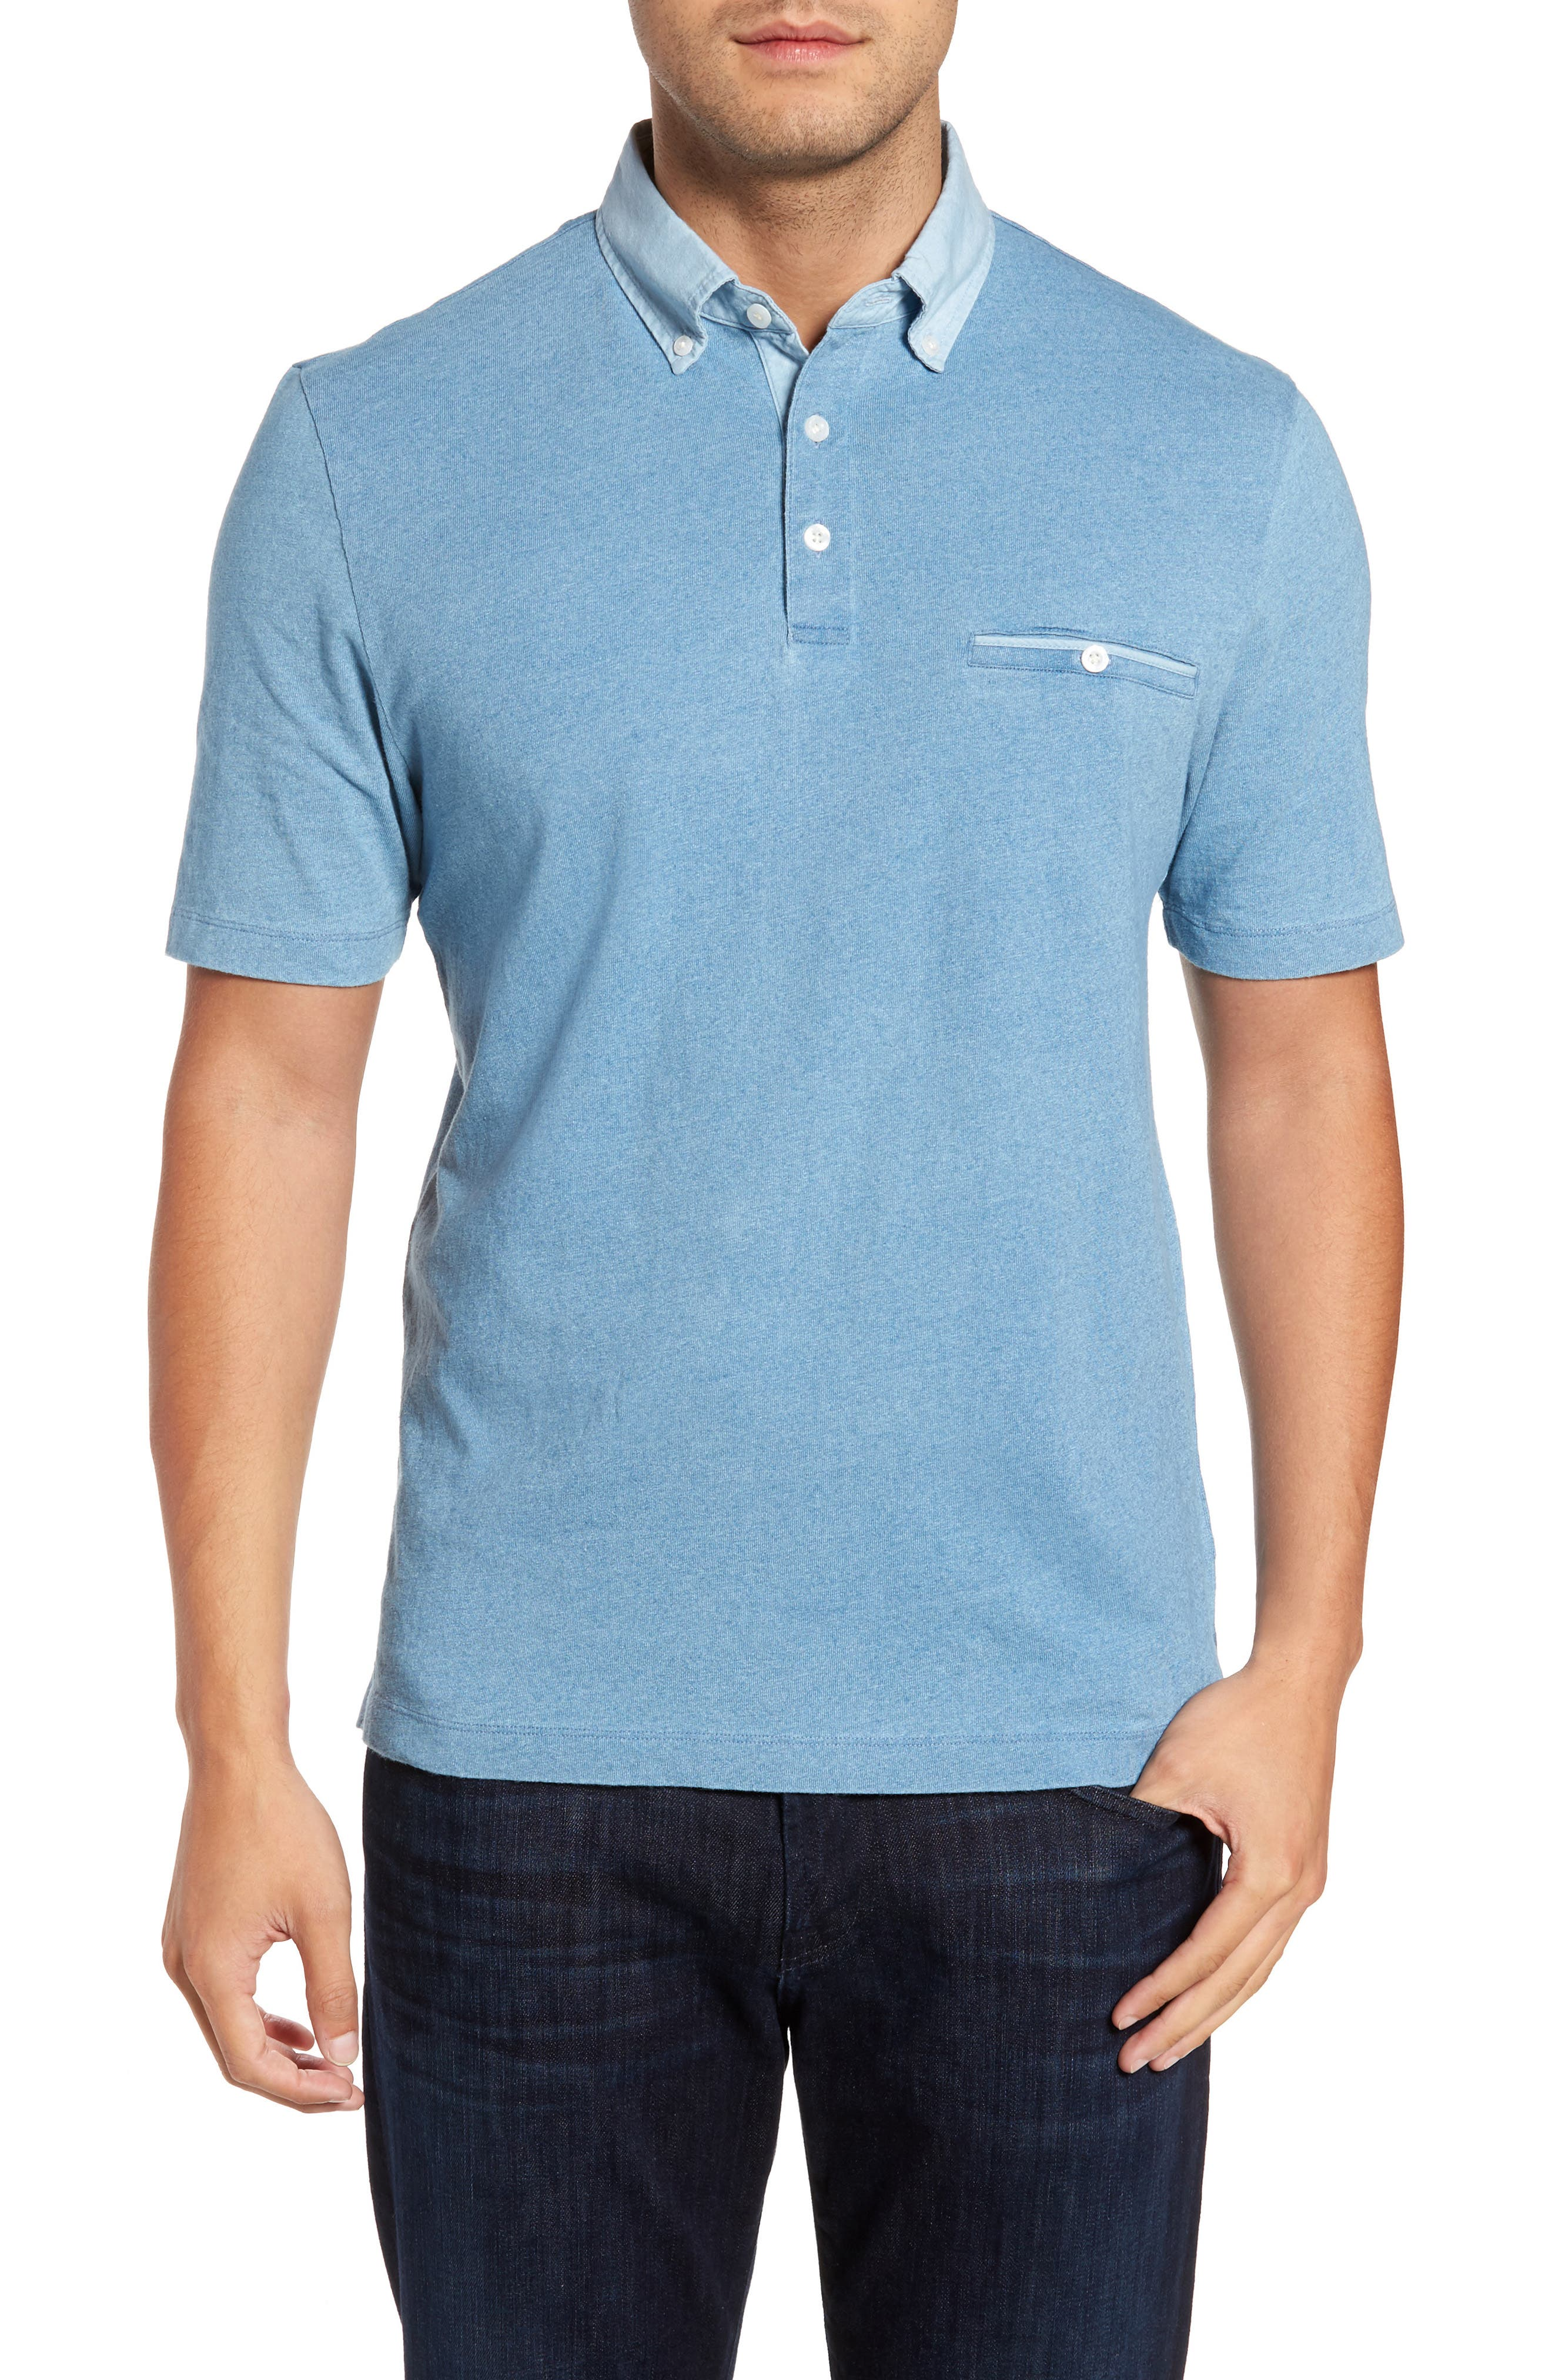 Alternate Image 1 Selected - Thomas Dean Denim Trim Jersey Polo